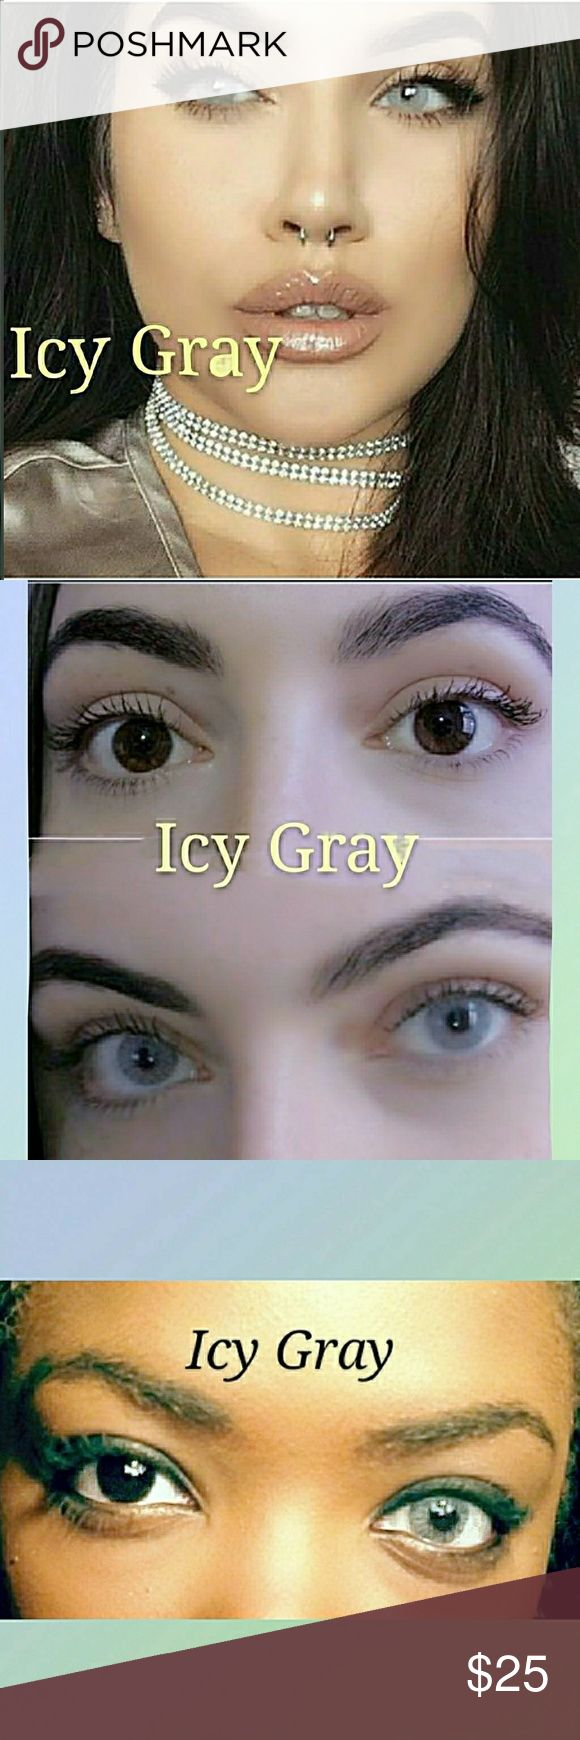 How to order colored contacts online -  Icy Gr Y Color Contact Lenses Get This Sophisticated Color For Autumn Model